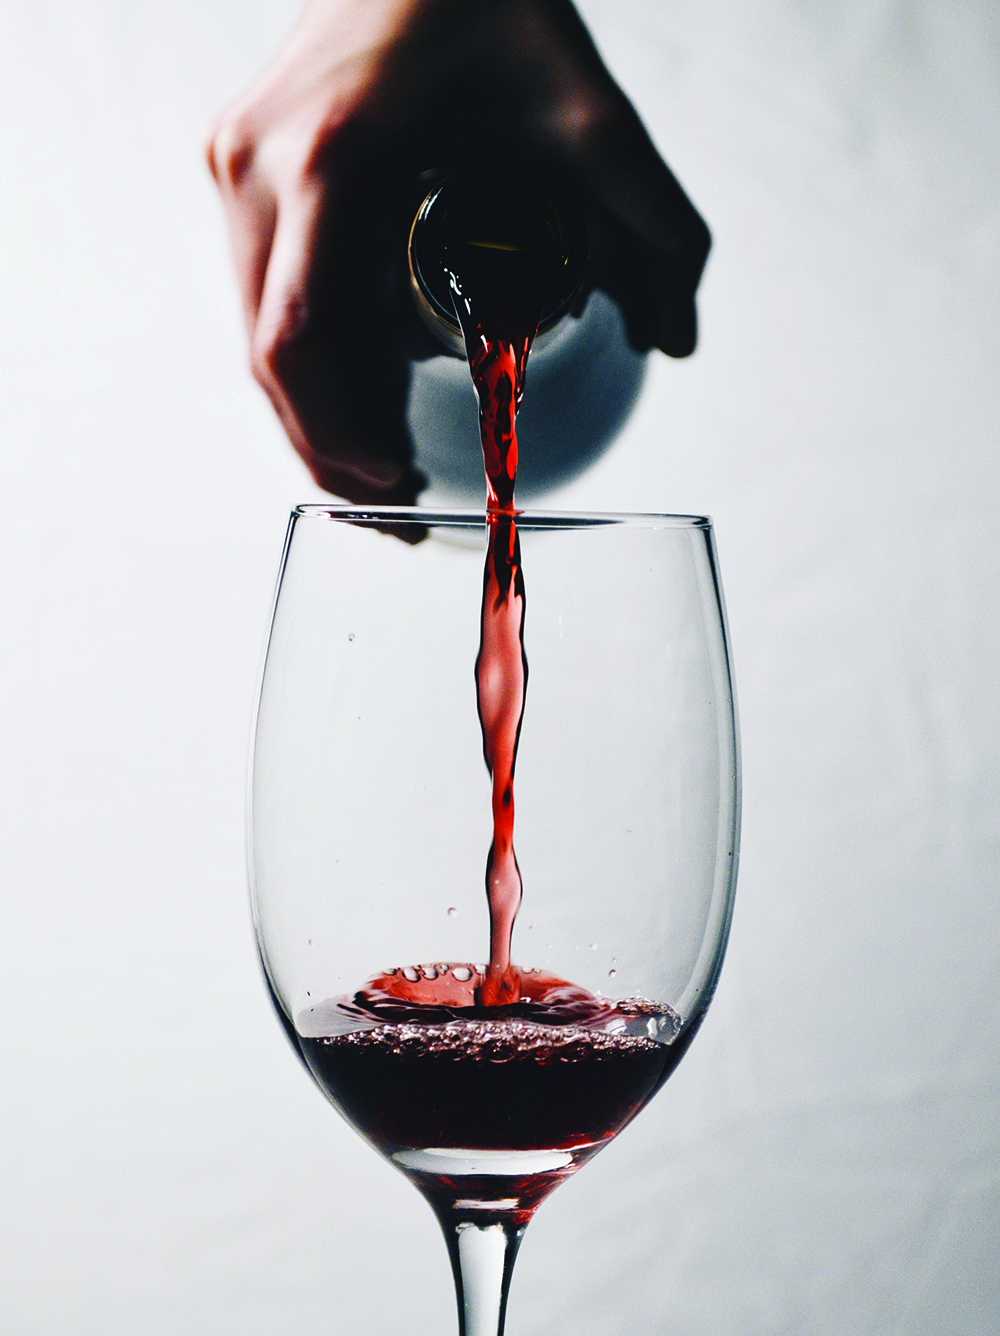 Close-Up Of Hand Pouring Wine Into Glass